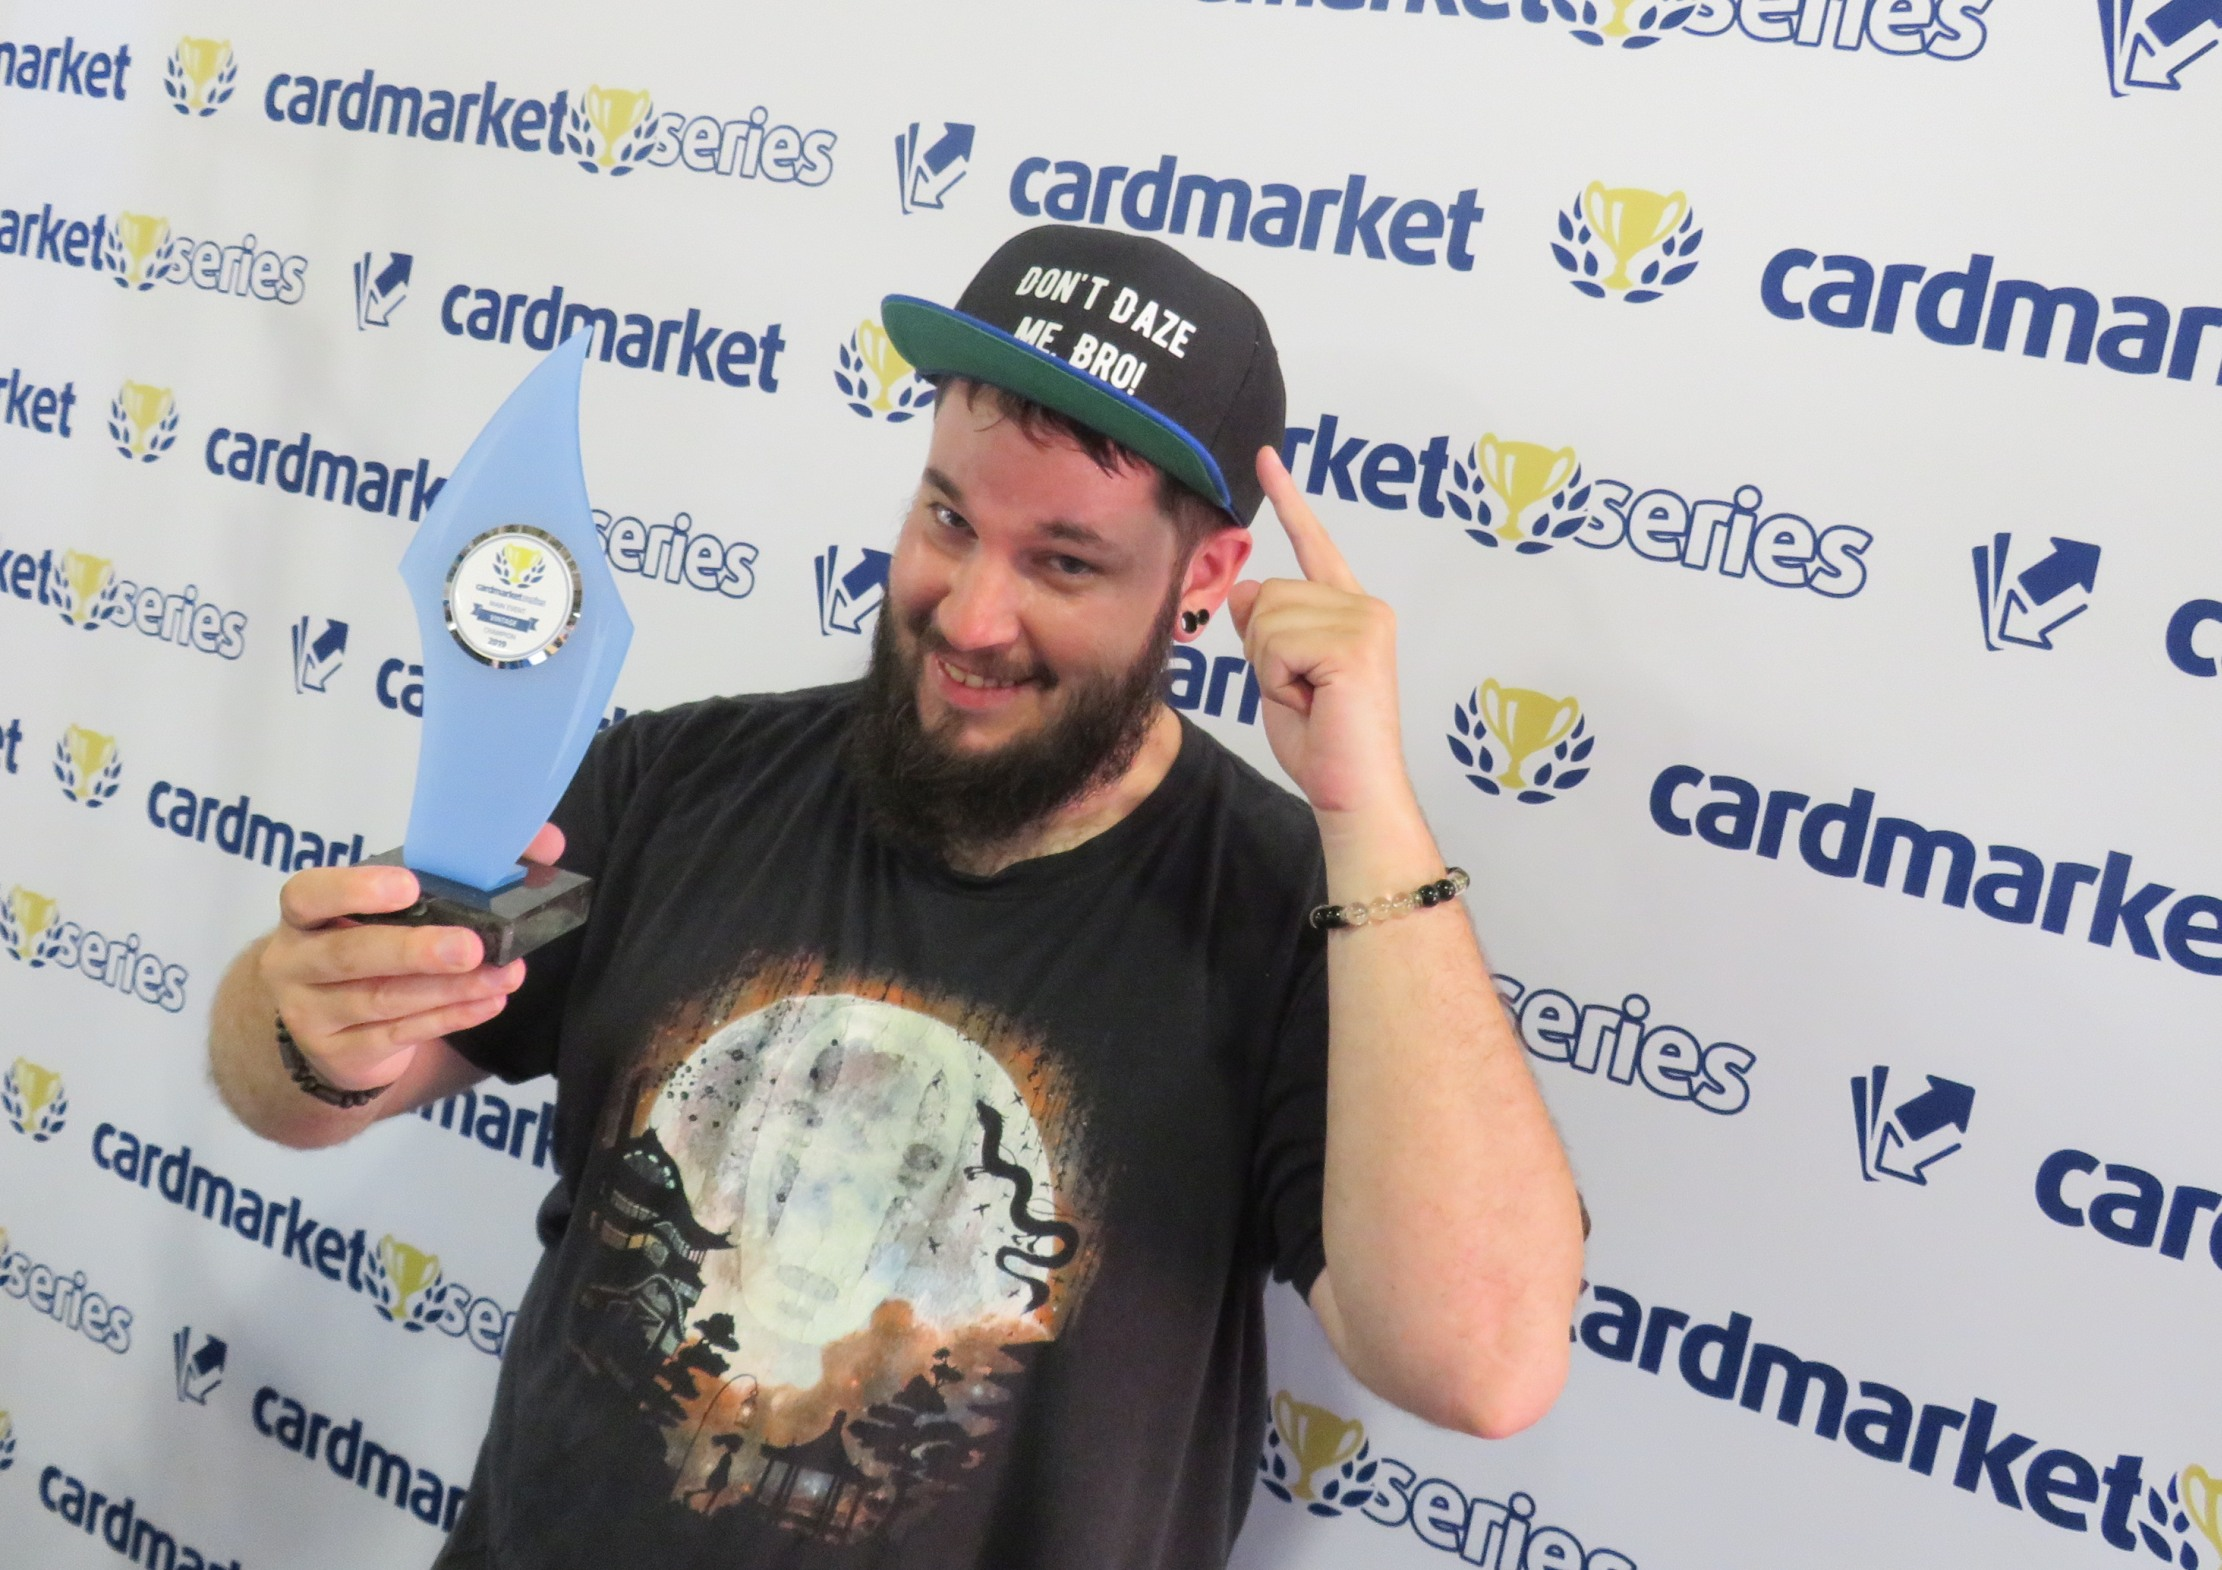 The Vintage Top 8 at Cardmarket Series Paris 2019